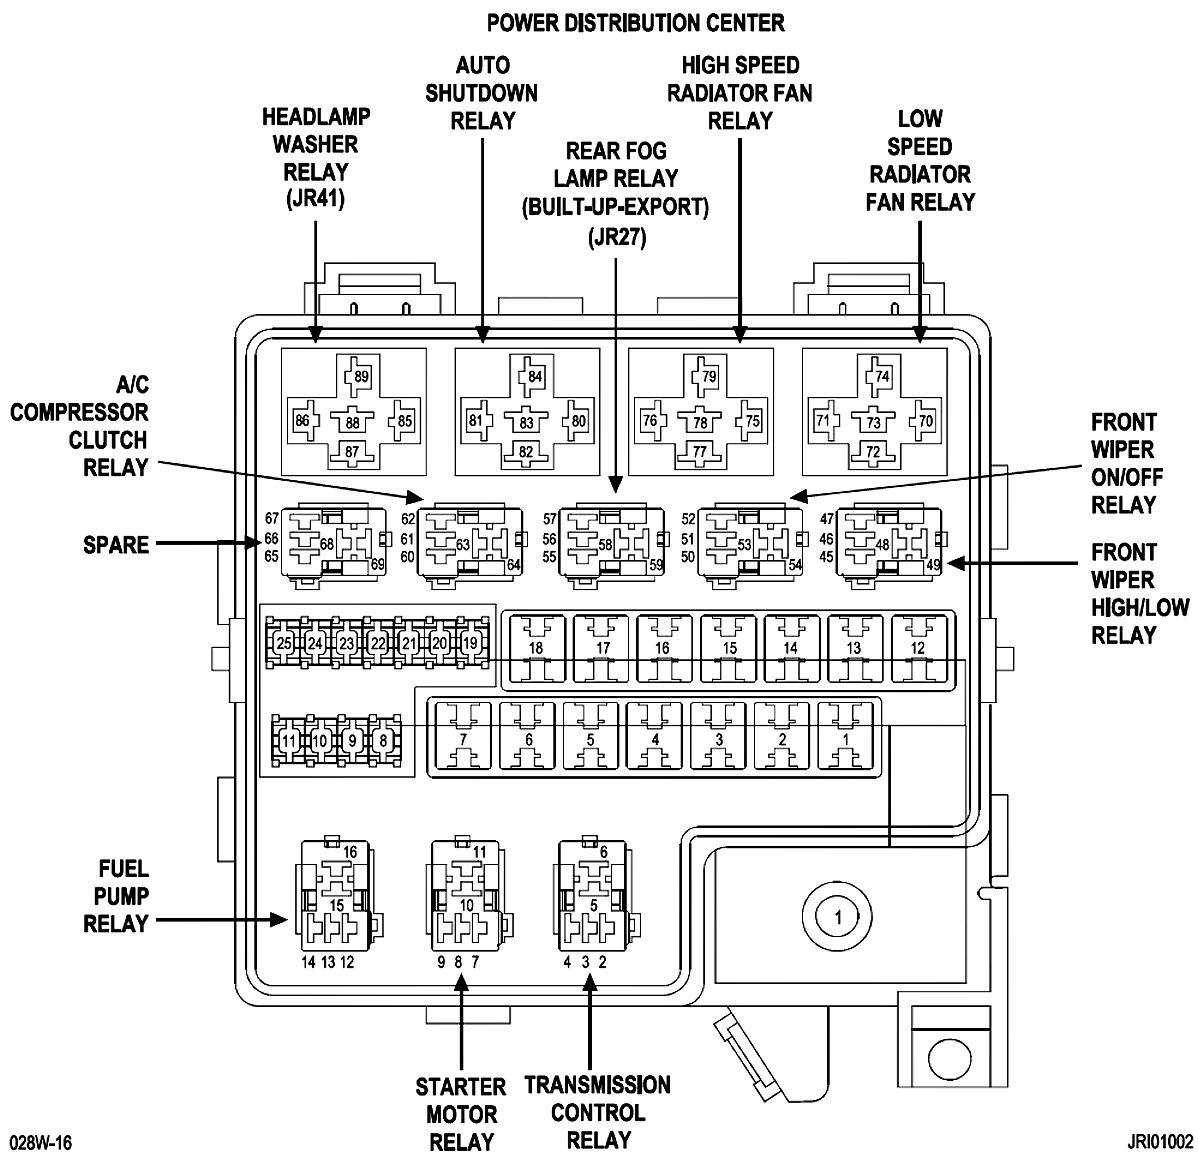 2003 Dodge Stratus Fuse Box Location Trusted Wiring Diagram 2005 Ram 1500 2004 Image Details